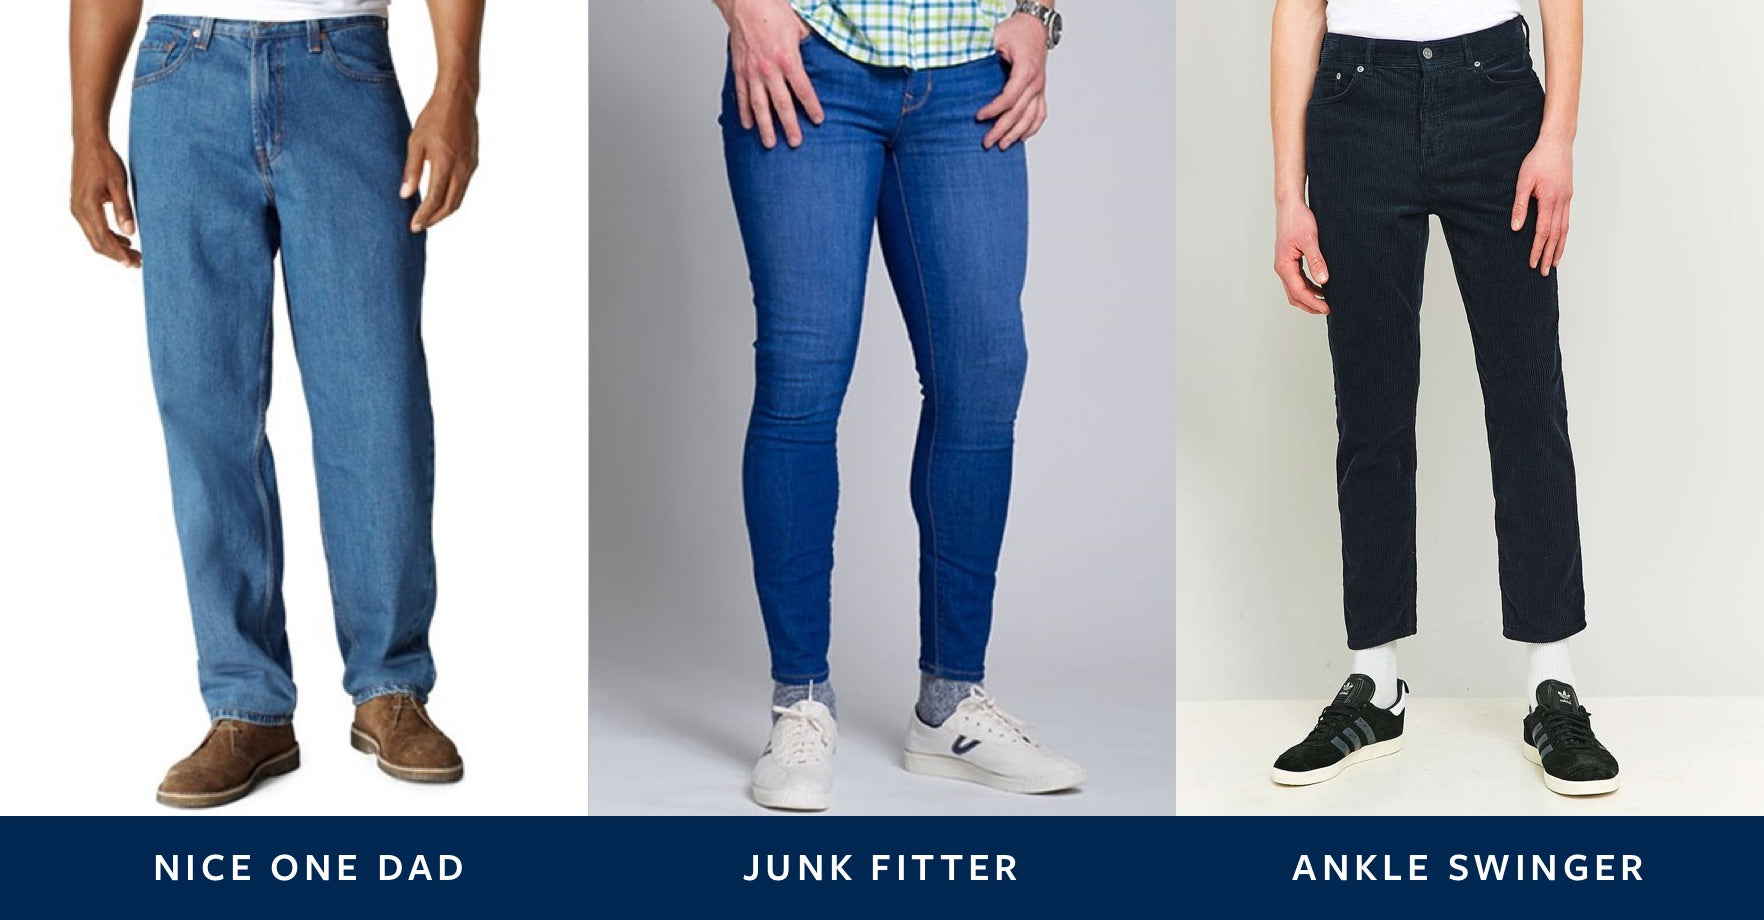 Stop Wearing Bad Jeans Competition